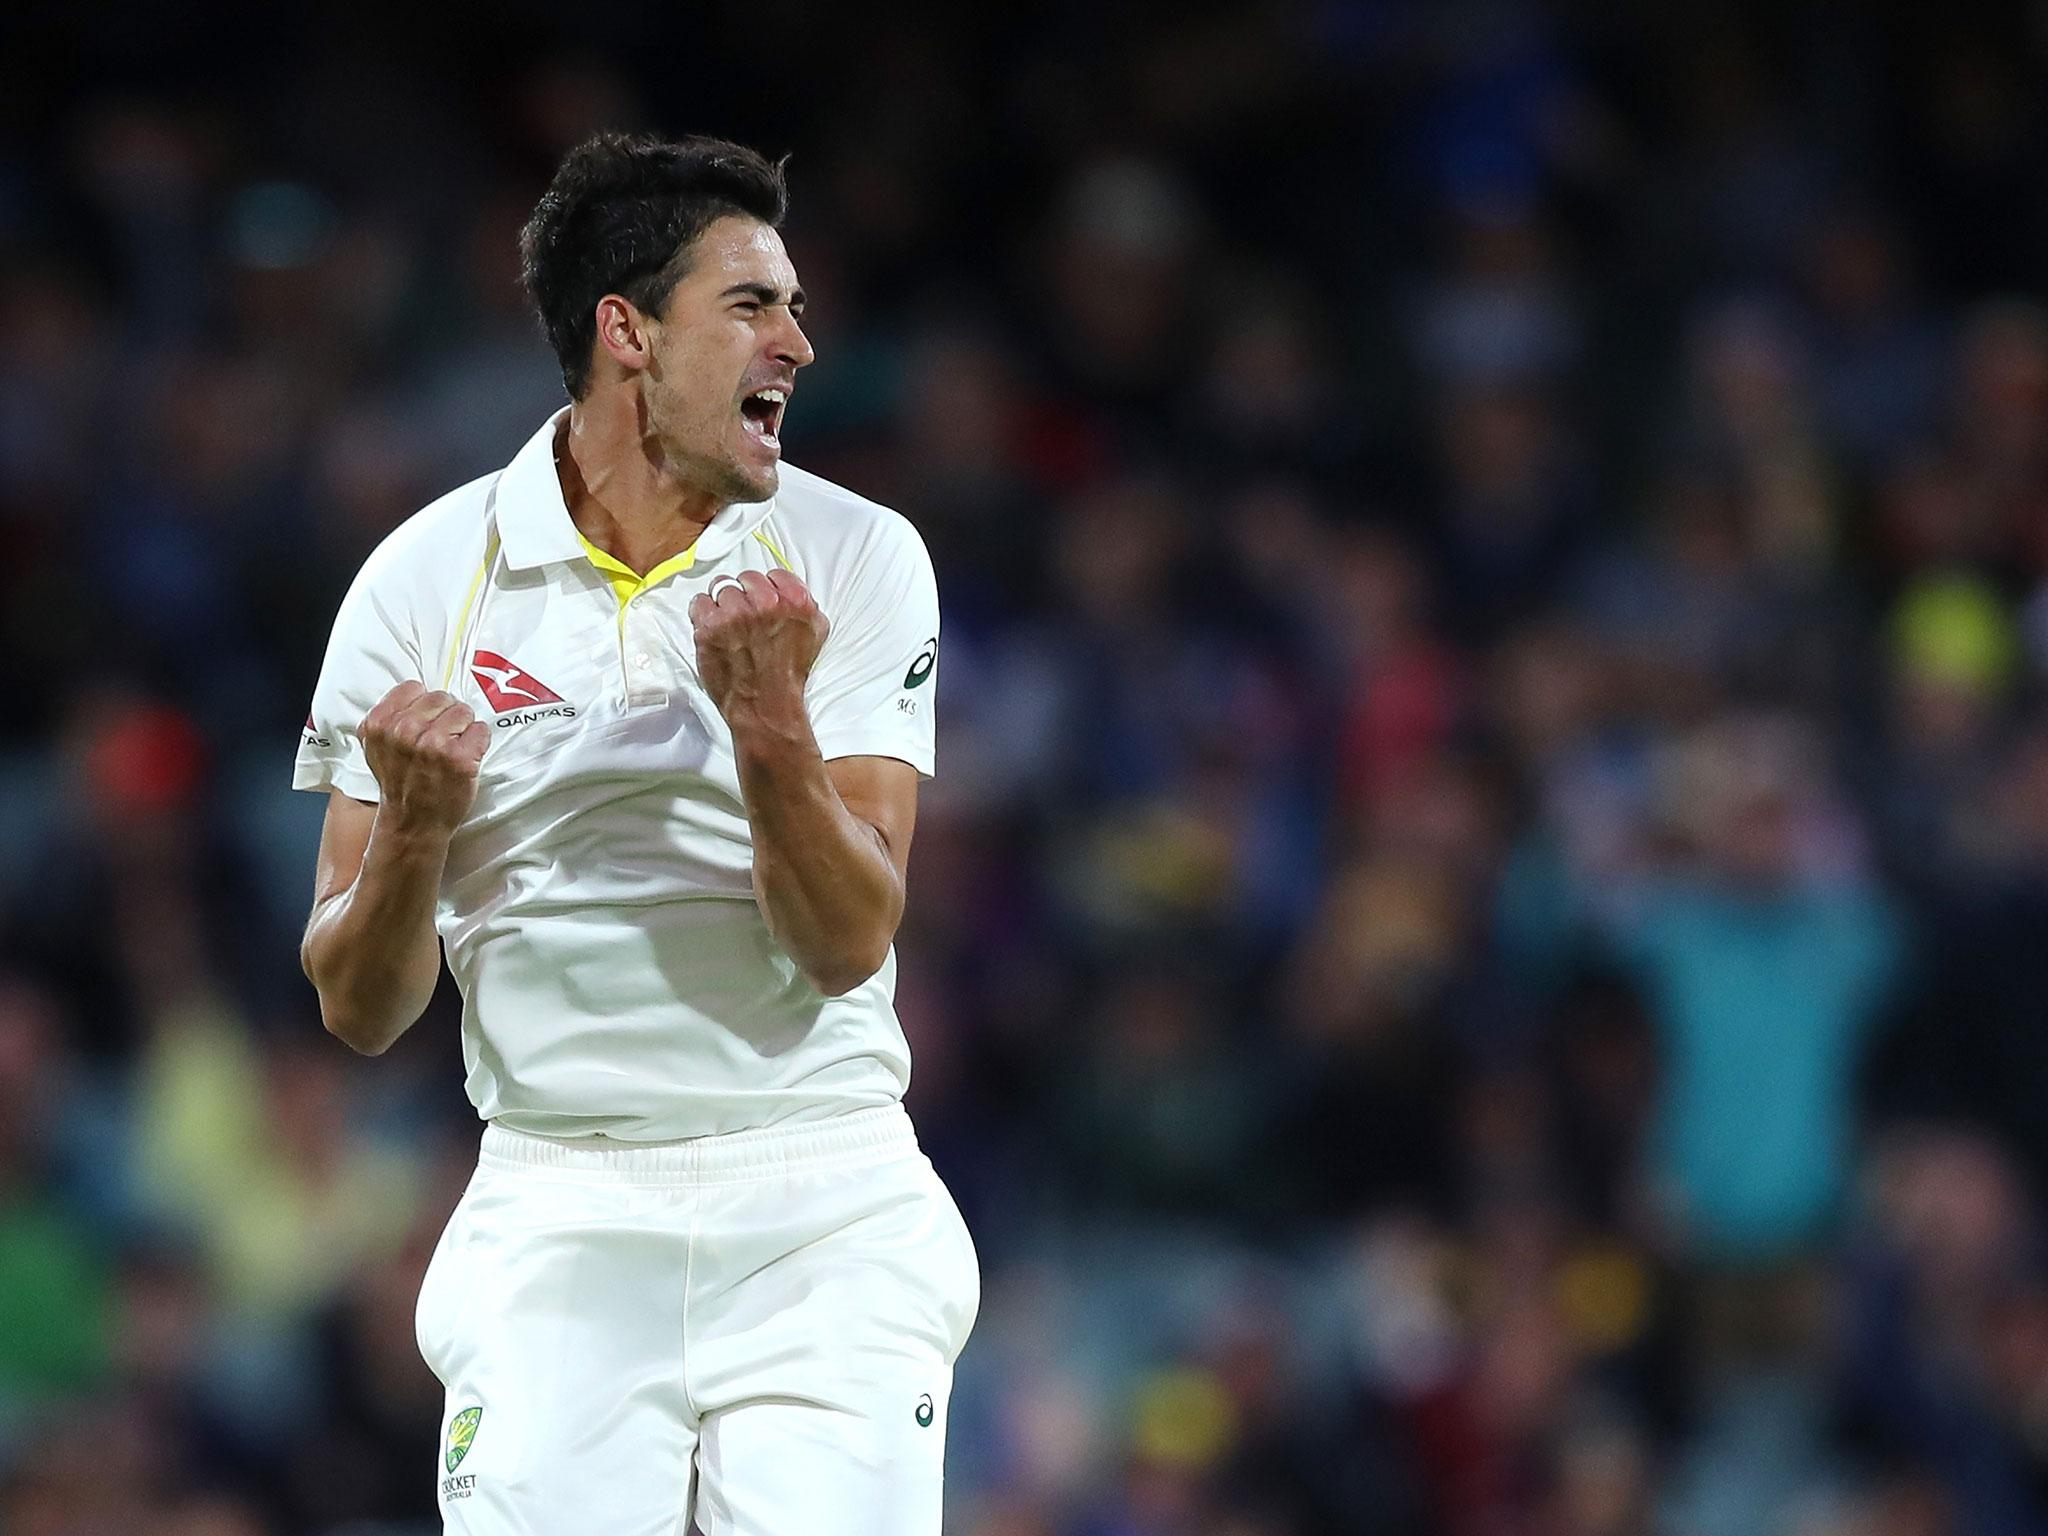 Ashes 2017-18: Mitchell Starc Brings Back The Analogy Of Mitchell Johnson's 2013-14 Heroics 11